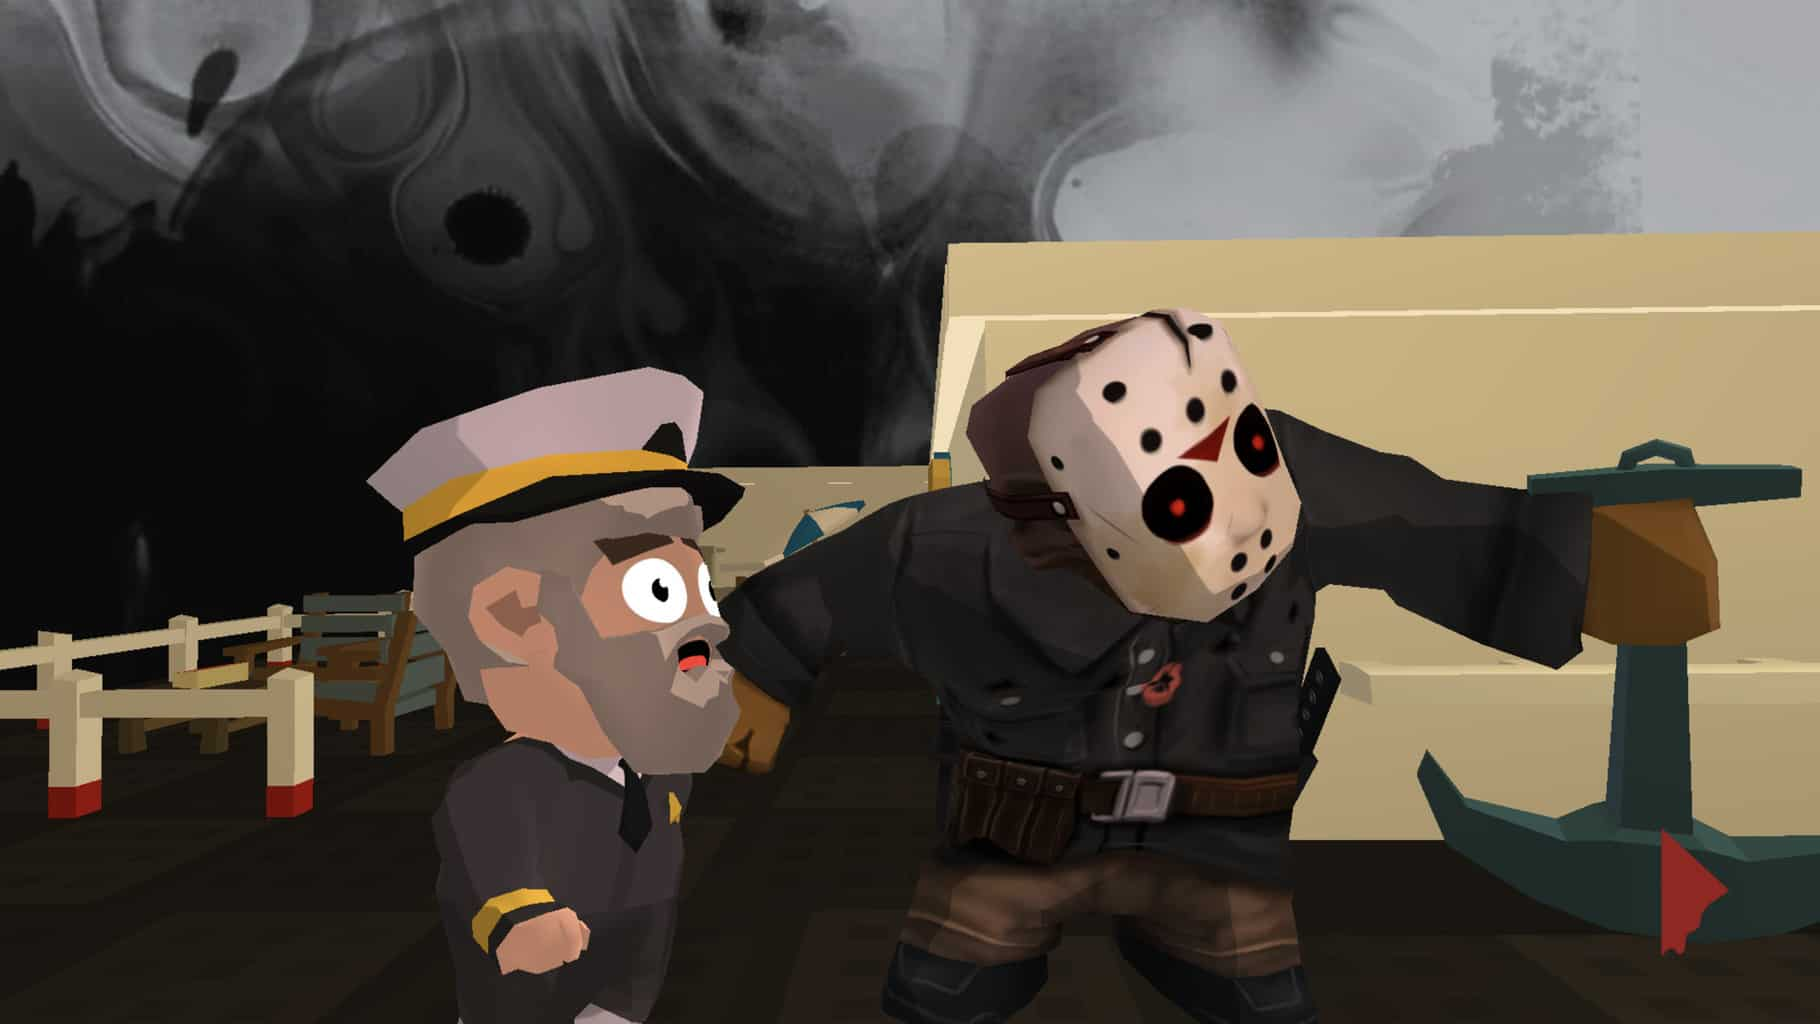 No, Jason isn't giving advice here, he's about to kill that poor guy.